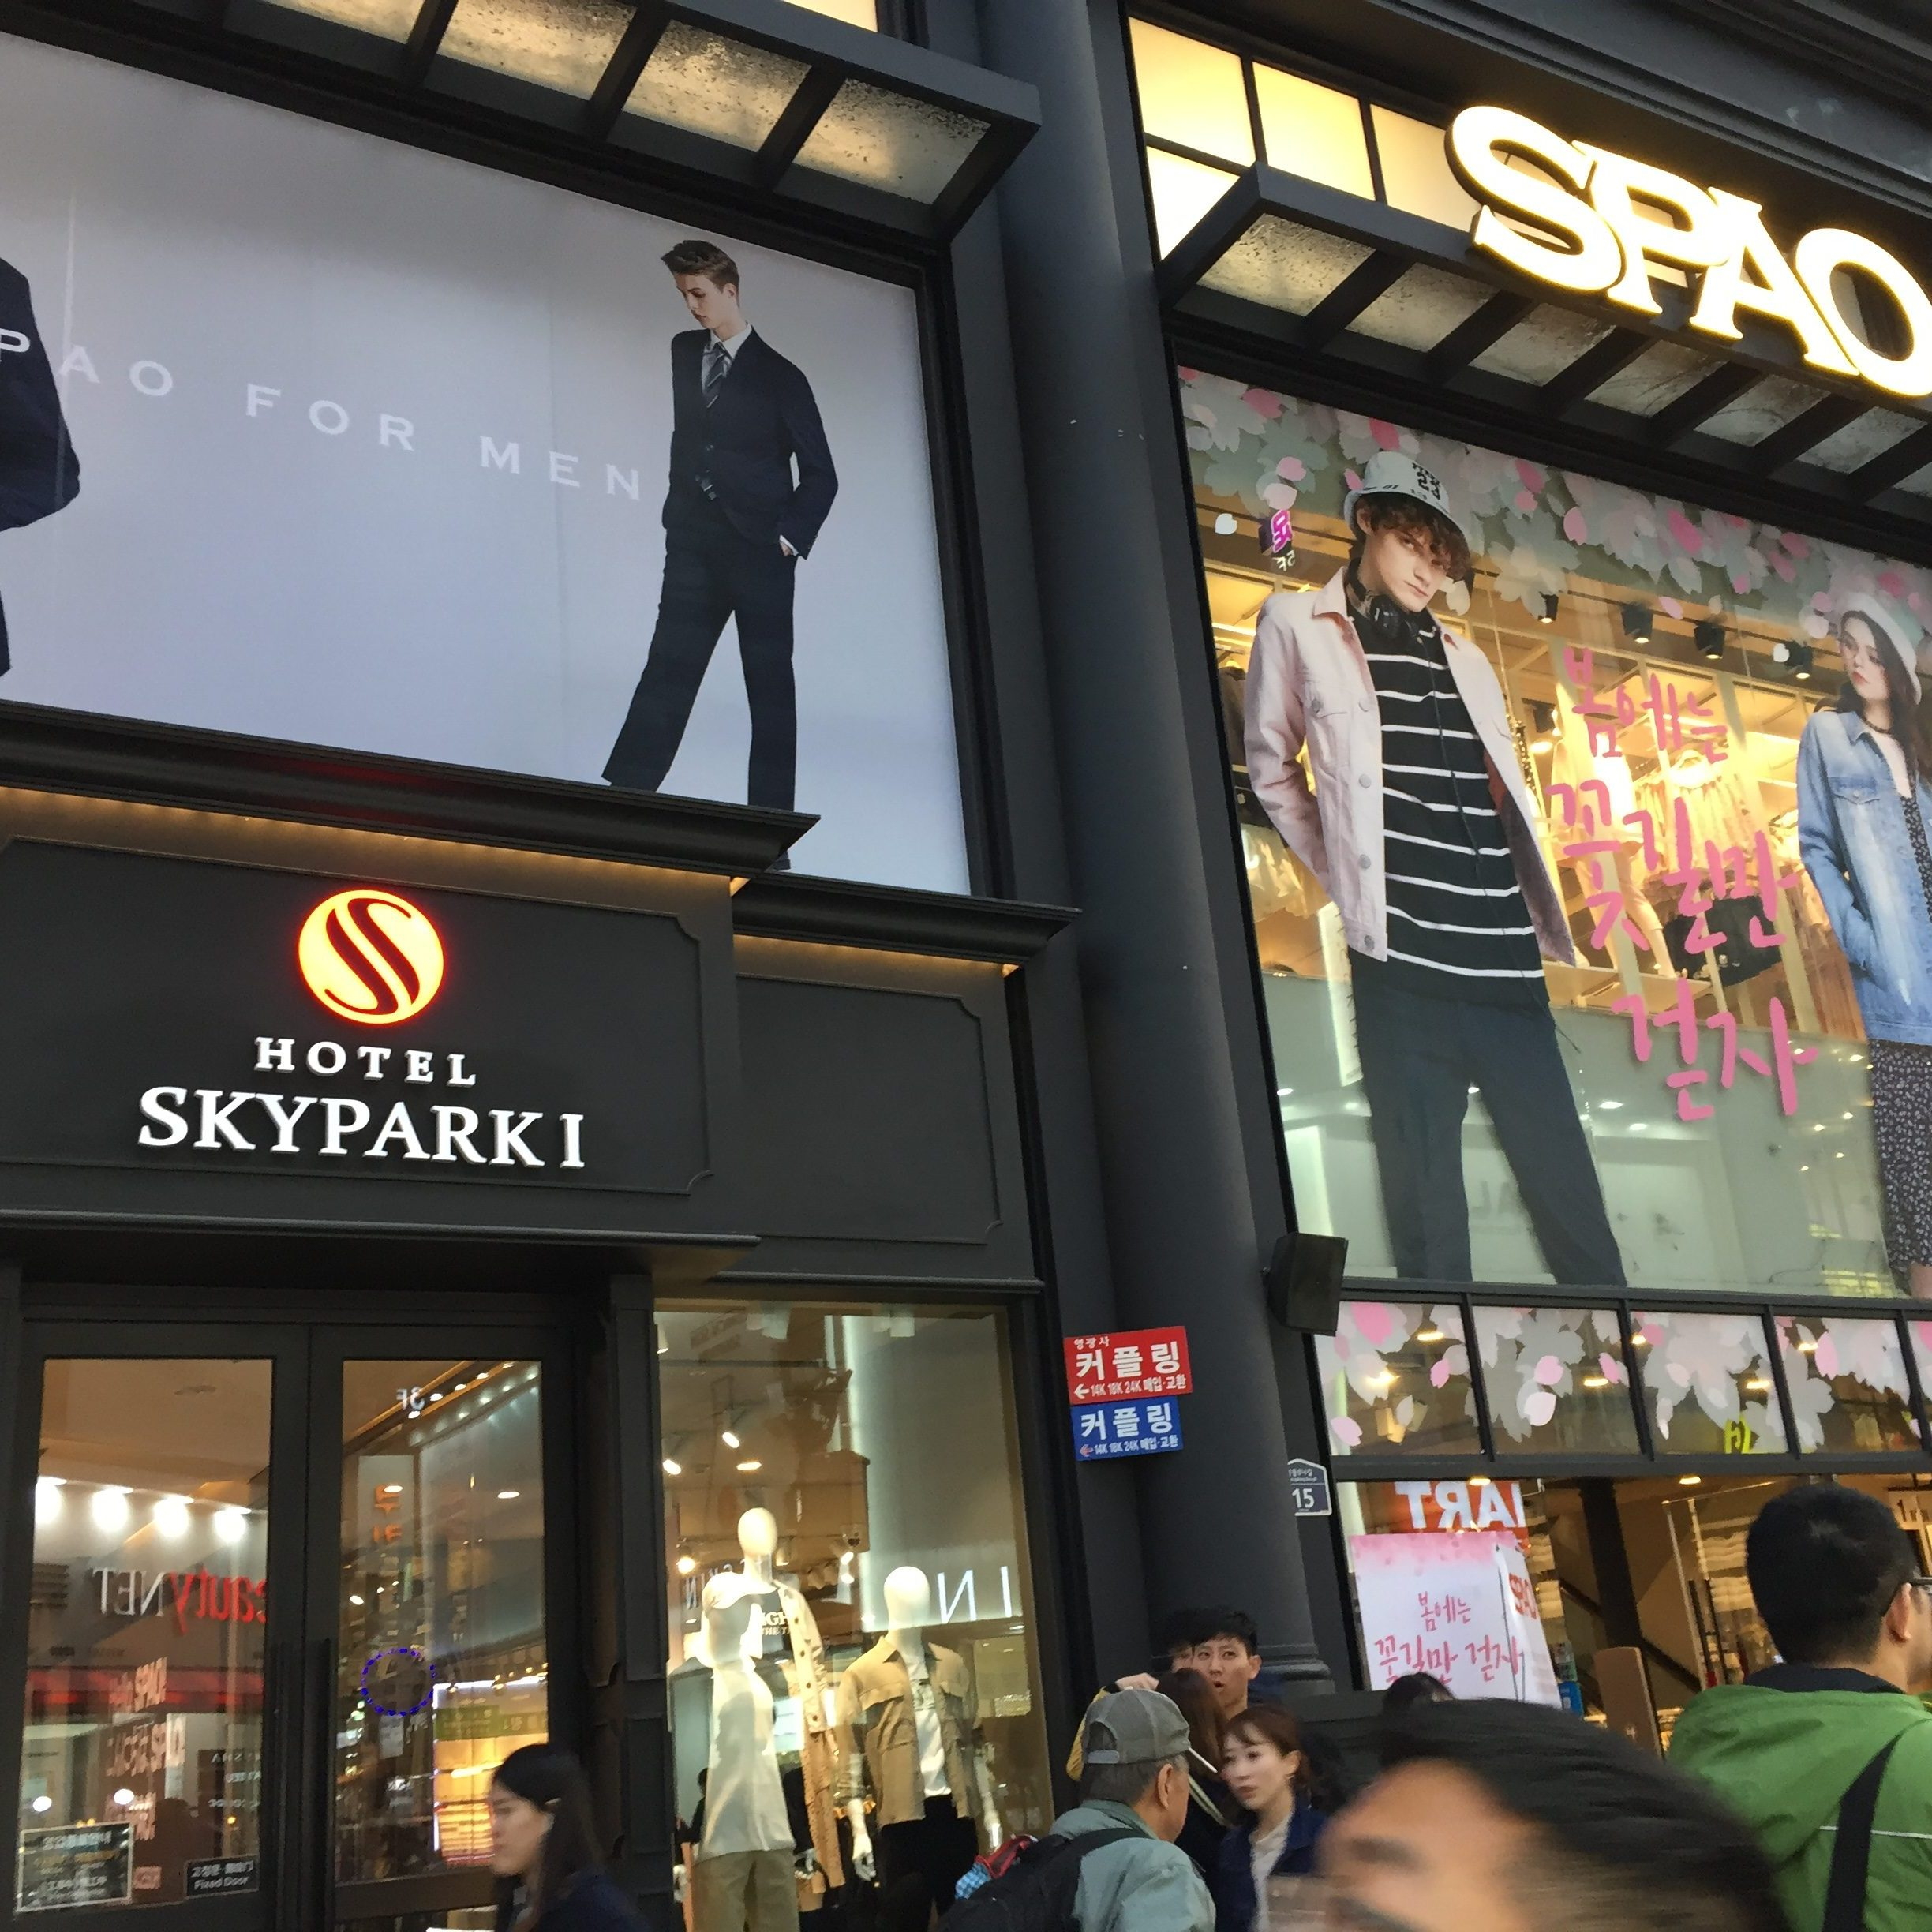 A huge SPAO store over 4 levels. And SkyPark 1 hotel - a good hotel. At Myeong-dong